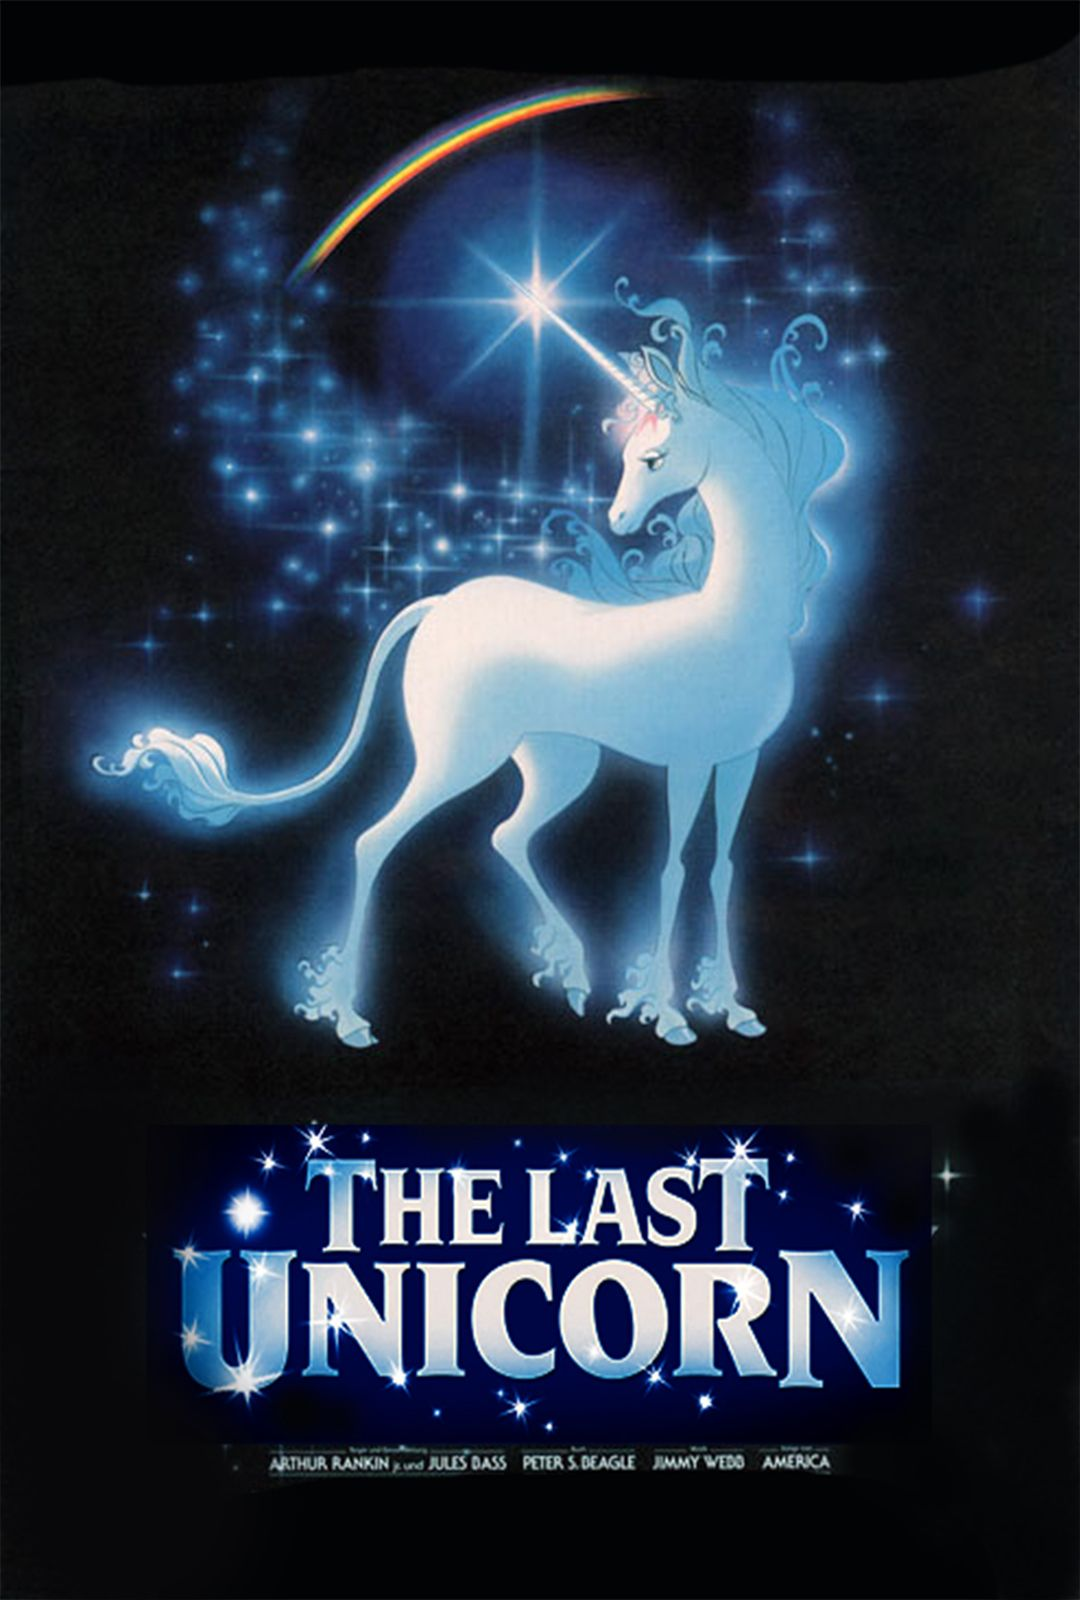 Poster For The Last Unicorn By Peter Beagle In Pittsburgh From